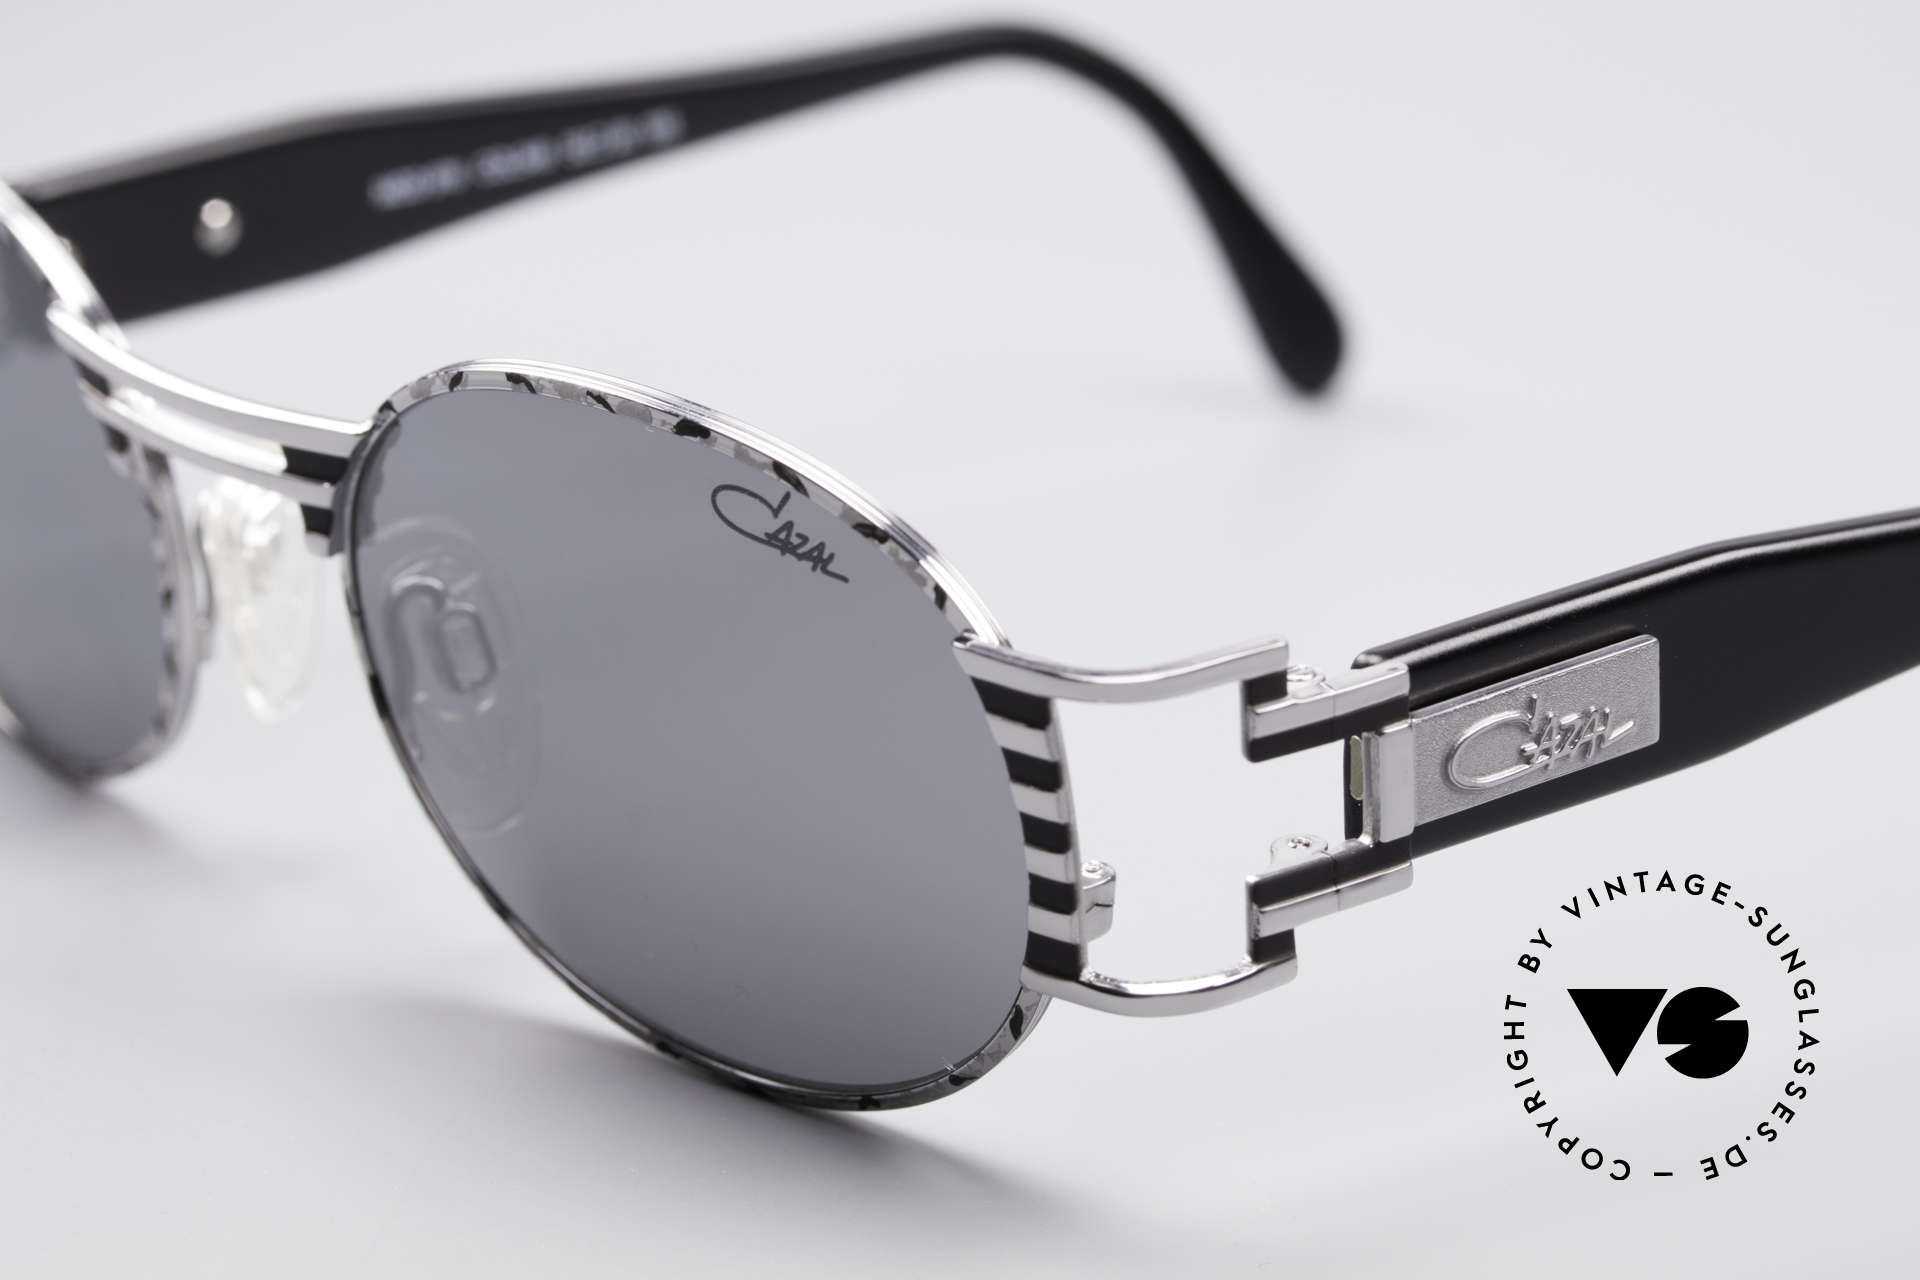 Cazal 976 Vintage Shades Oval Mirrored, mirrored CAZAL lenses with 'UV Protection' mark, Made for Men and Women